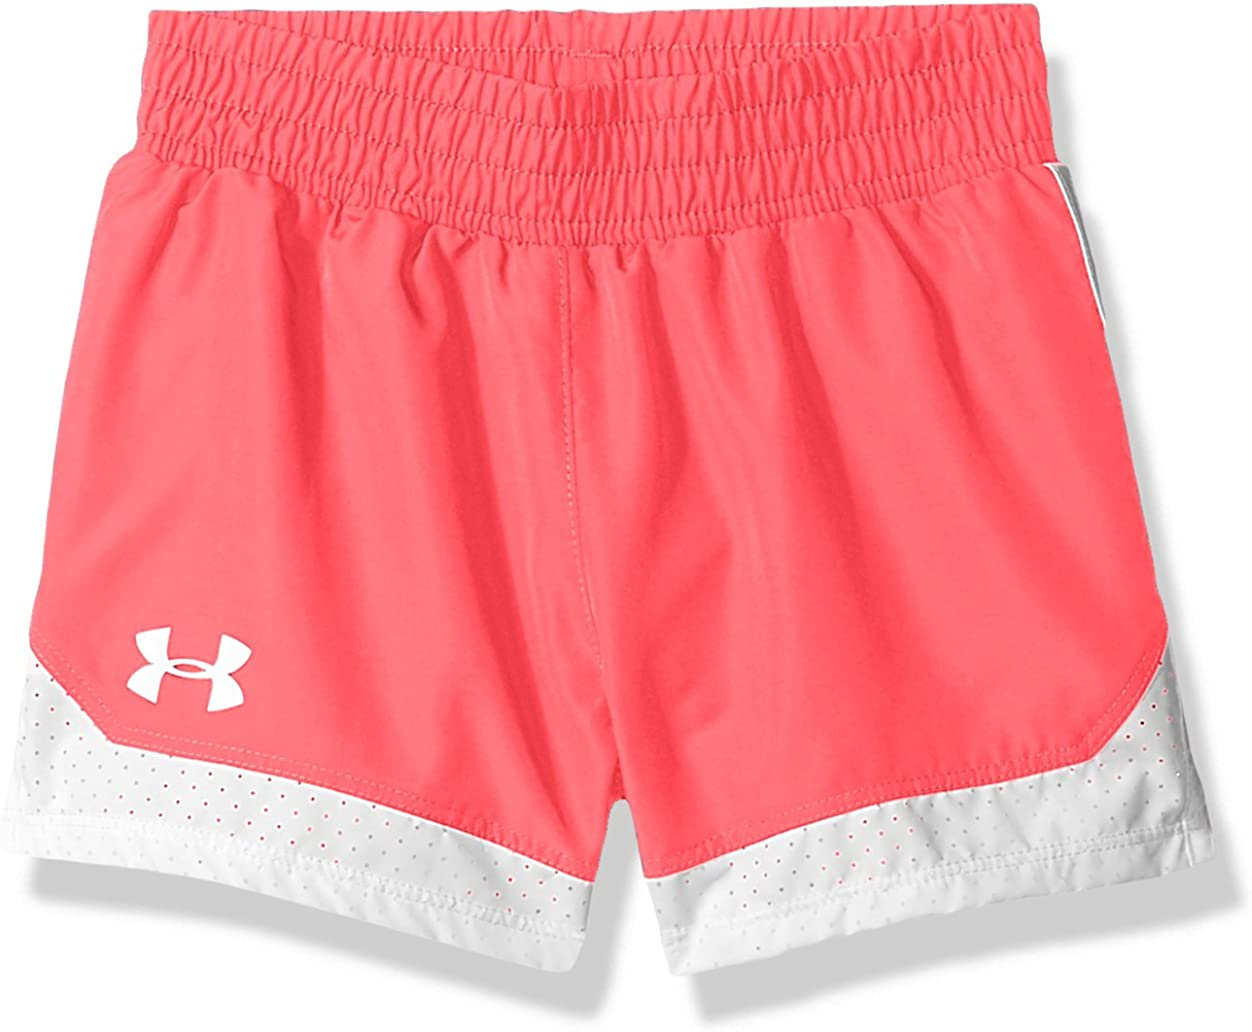 Under Armour Girls New Run Short Shorts